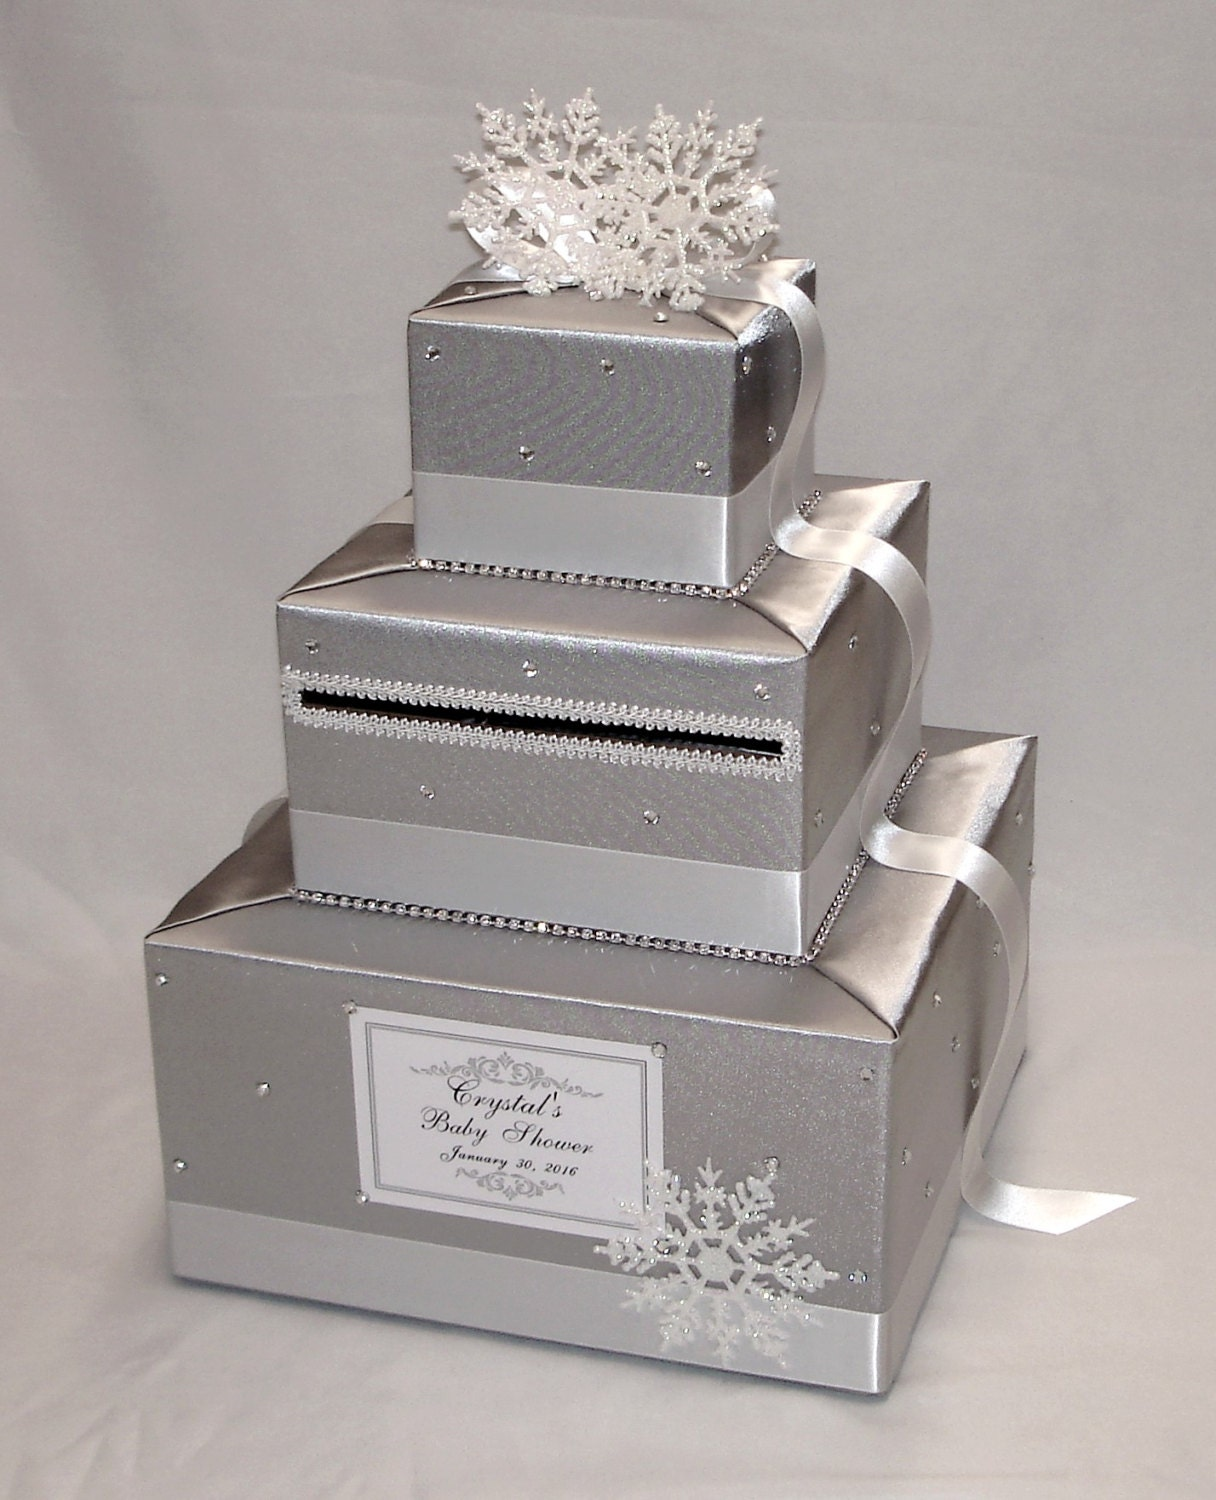 Winter Wonderland/Snowflake Theme Card Box-Silver And